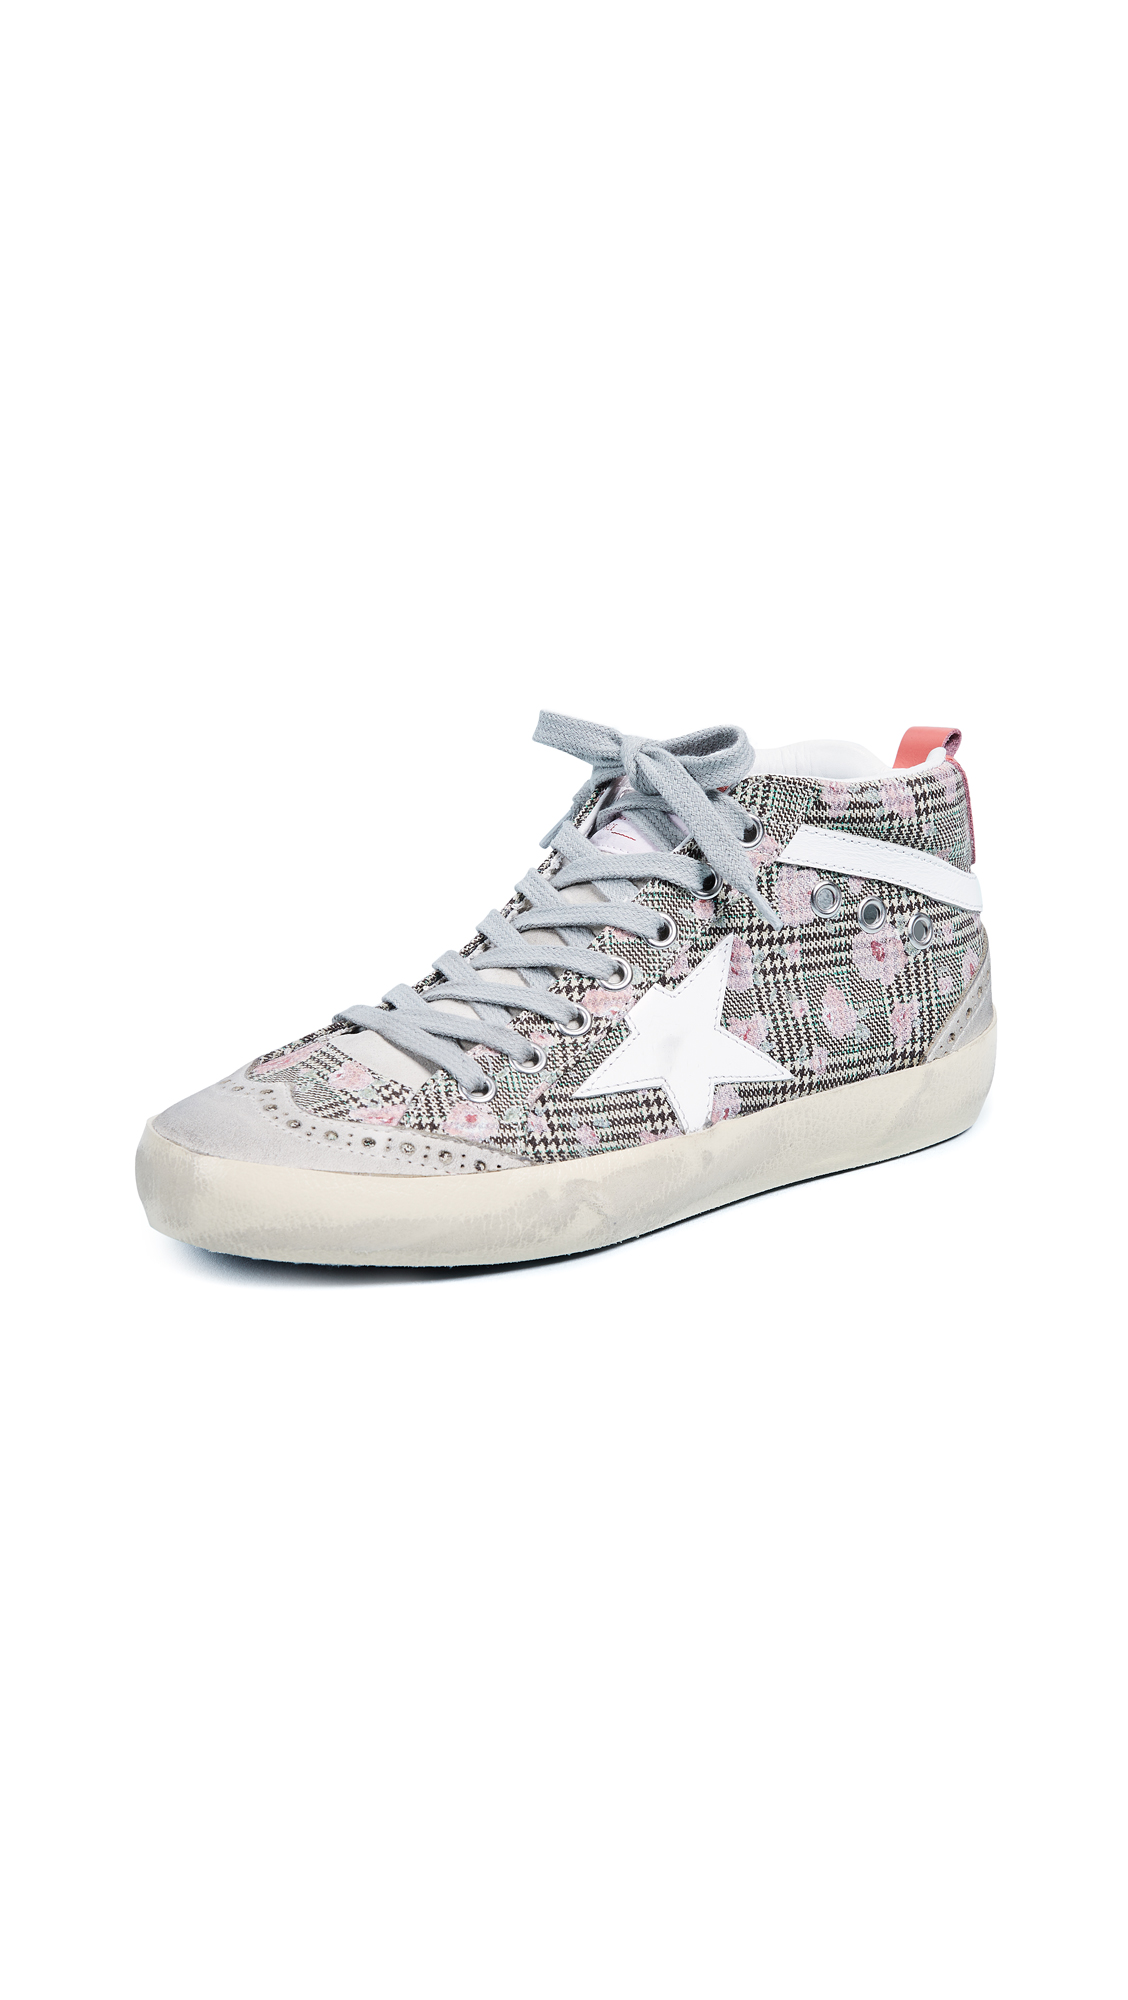 Golden Goose Mid Star Sneakers - Floral